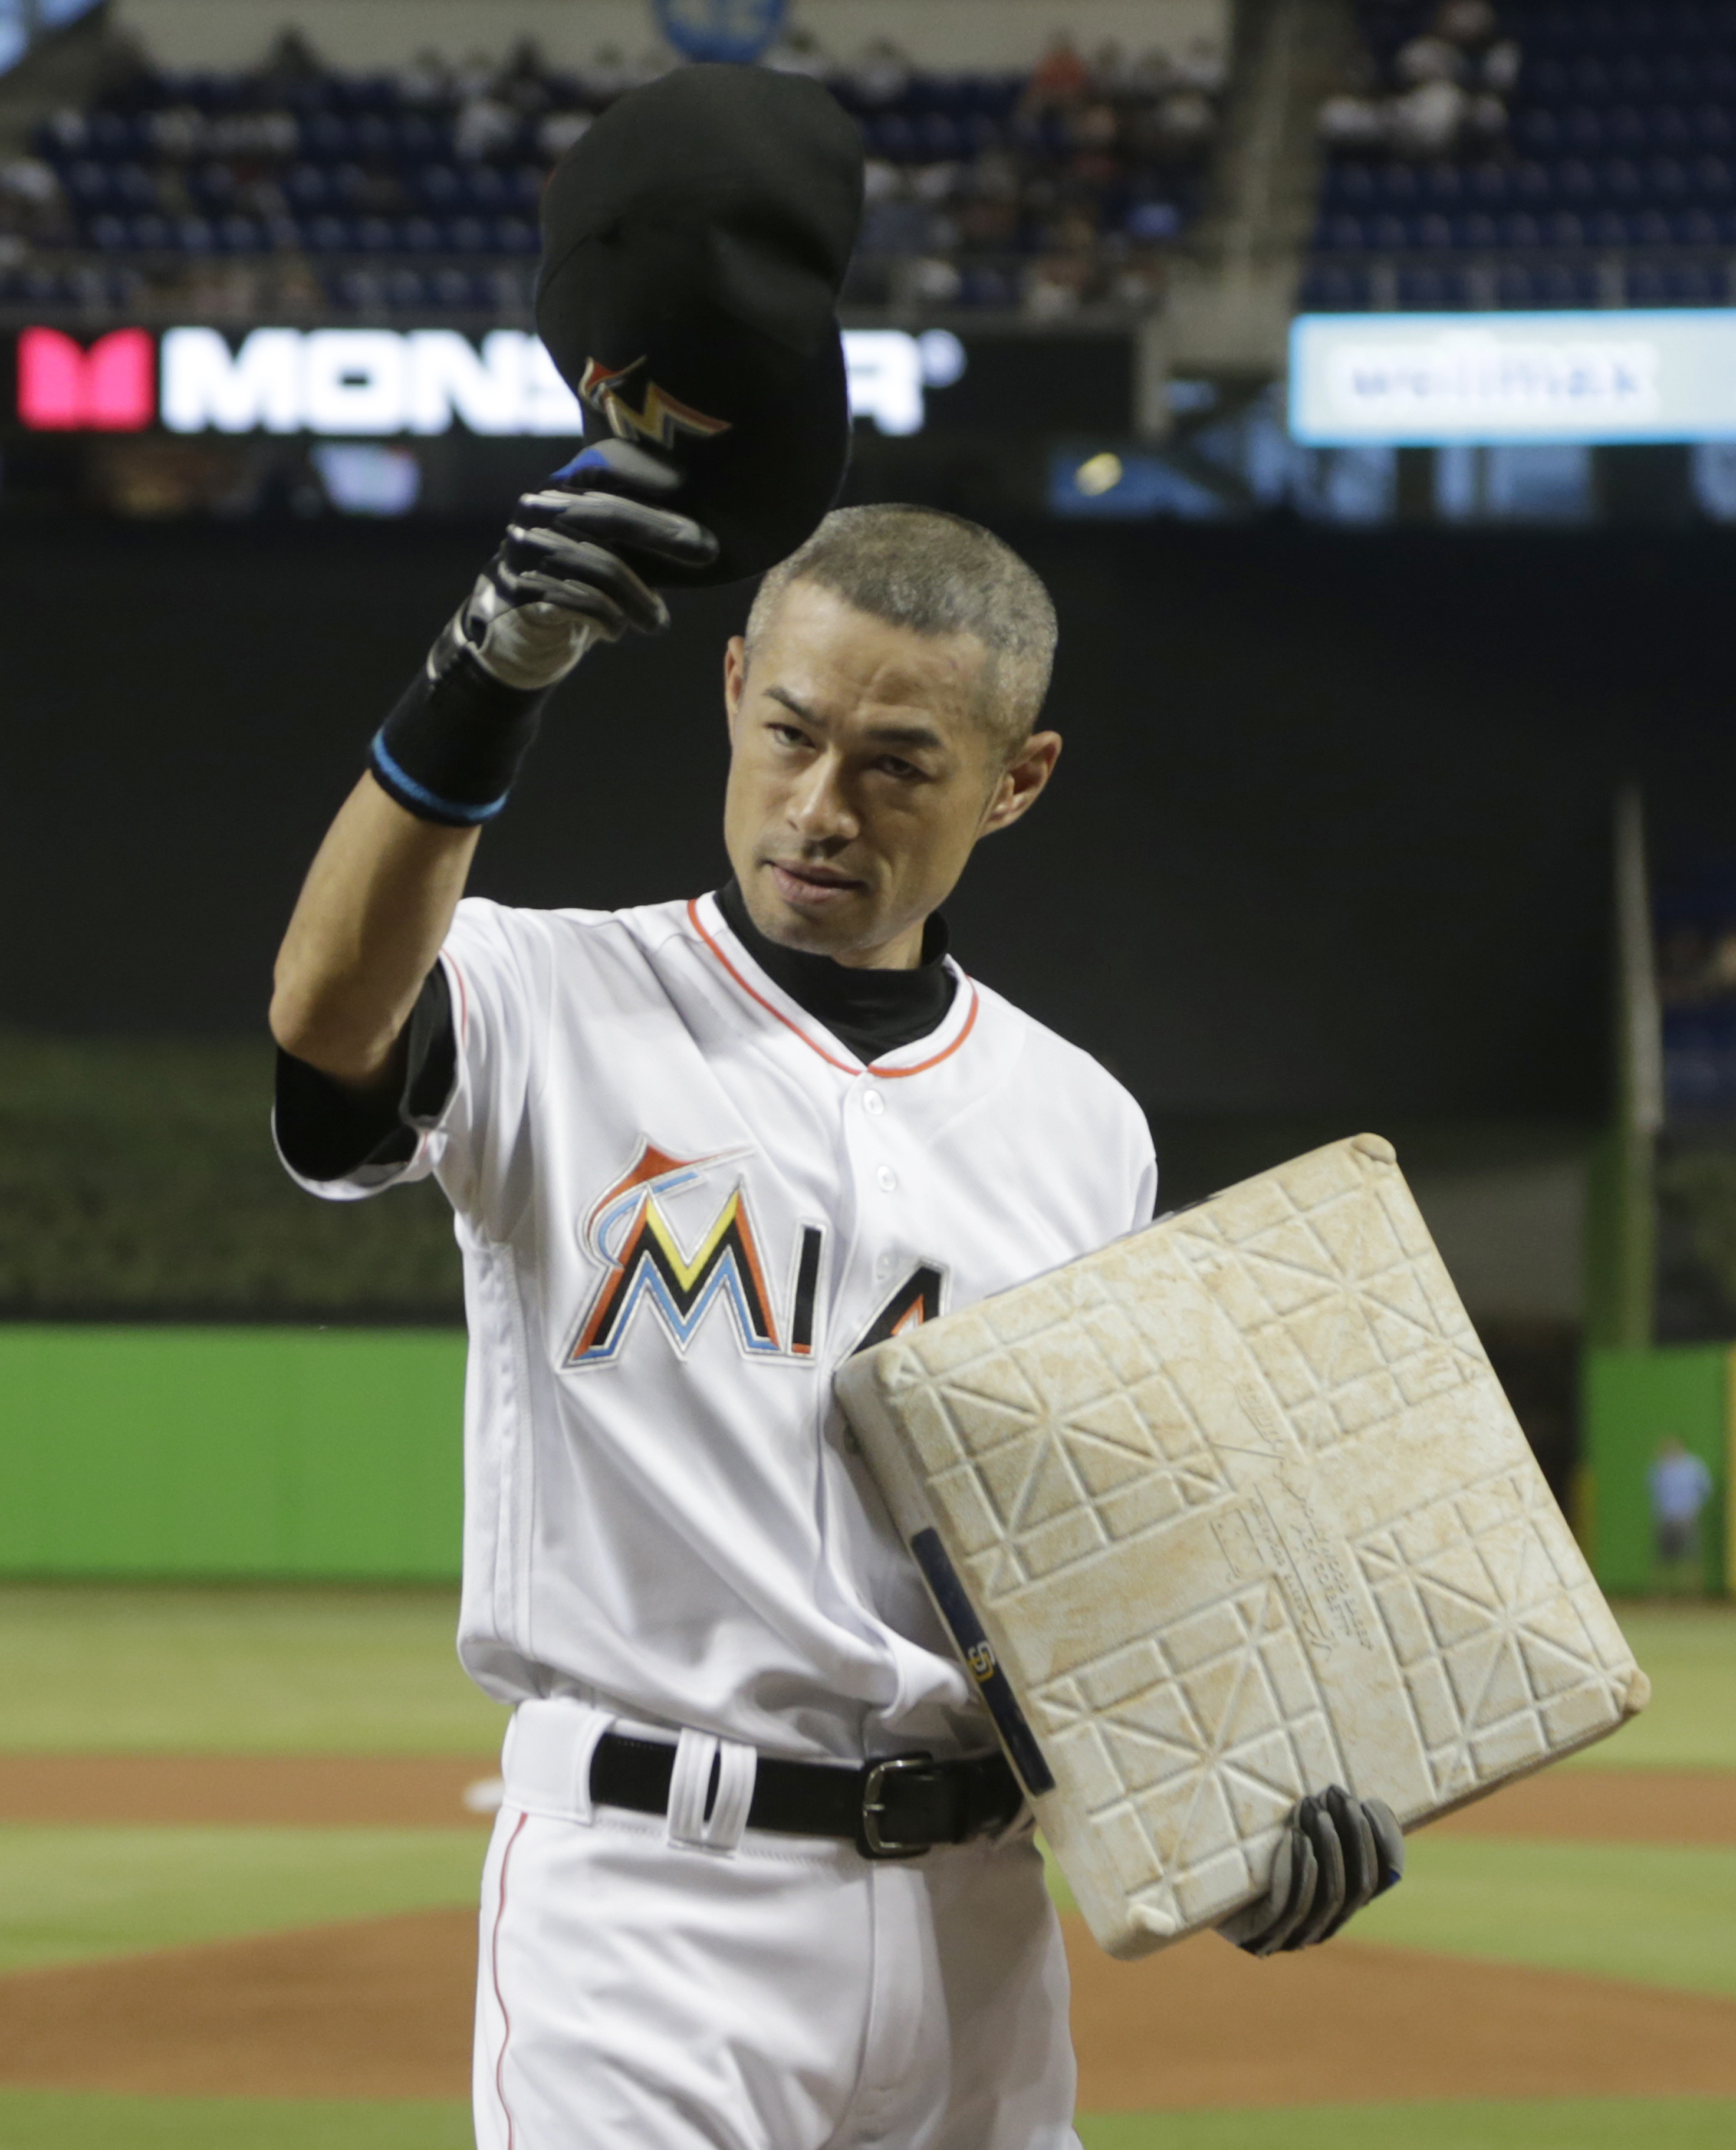 Miami Marlins' Ichiro Suzuki tips his cap after being presented with a base from the Marlins' game played against the San Diego Padres where Suzuki reached a career total of 4,257 hits in the Japanese and North American major leagues, before of a baseball